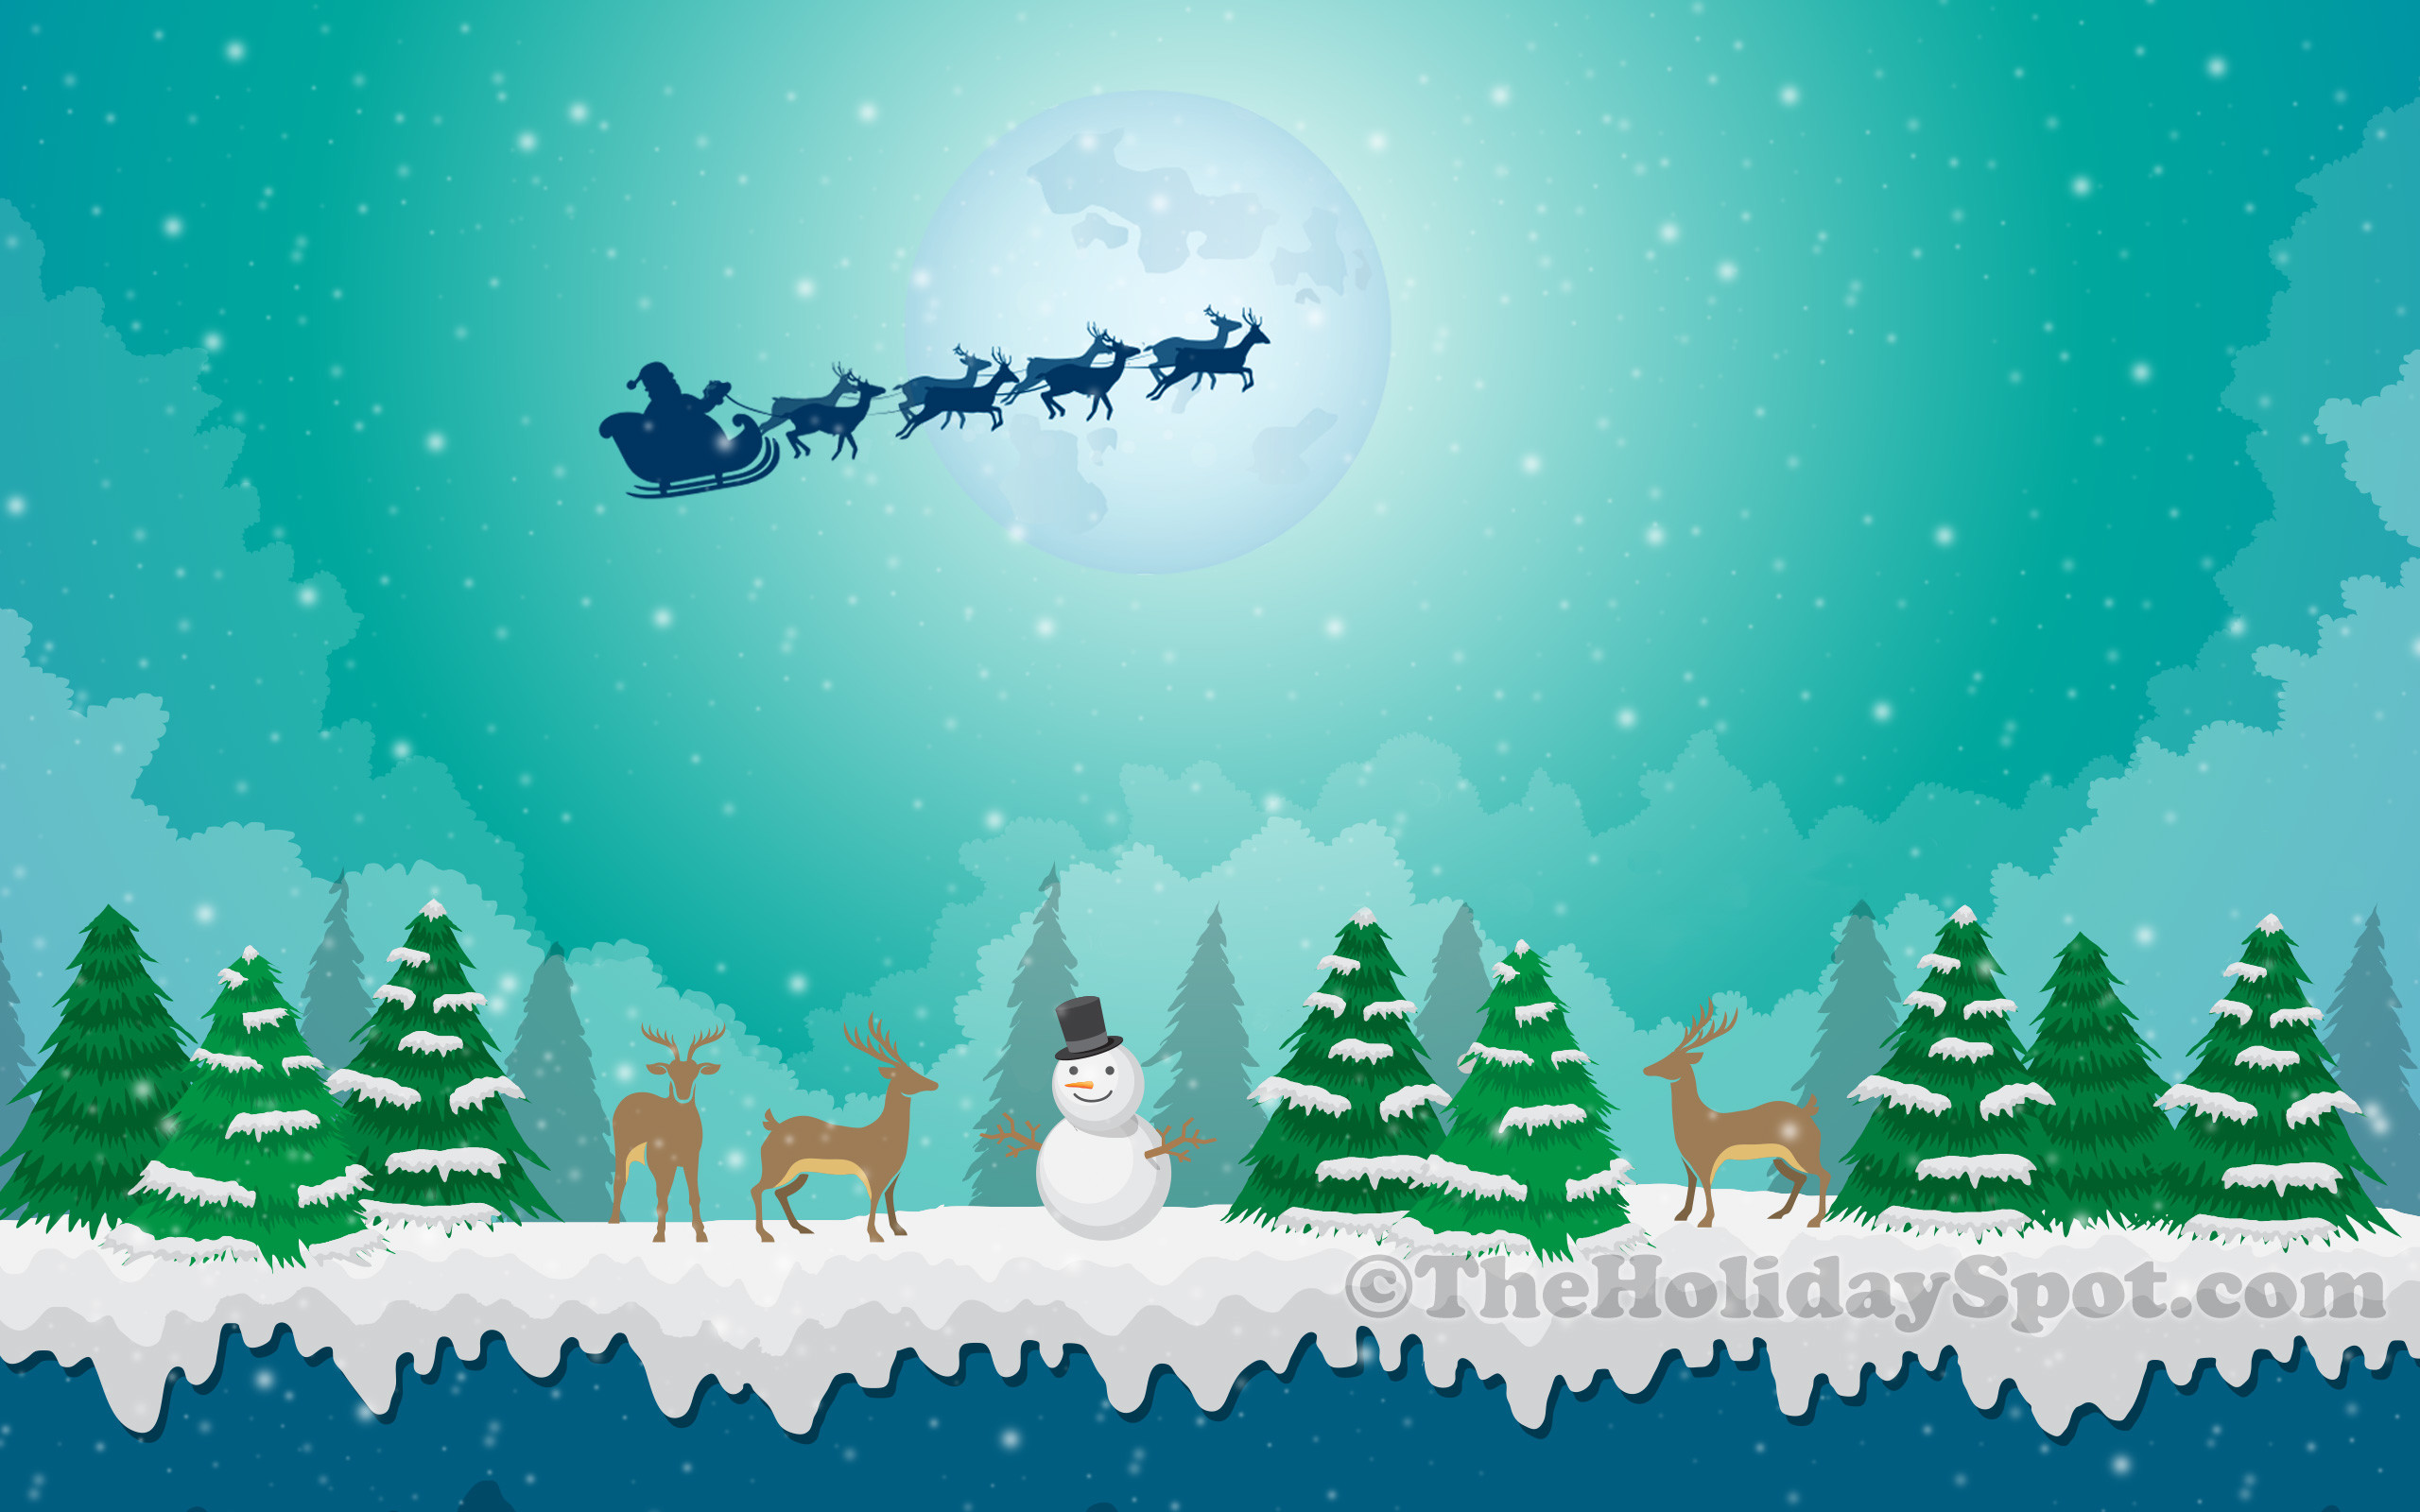 Snowing Christmas Scene.Wallpapers Christmas Scenes 46 Background Pictures